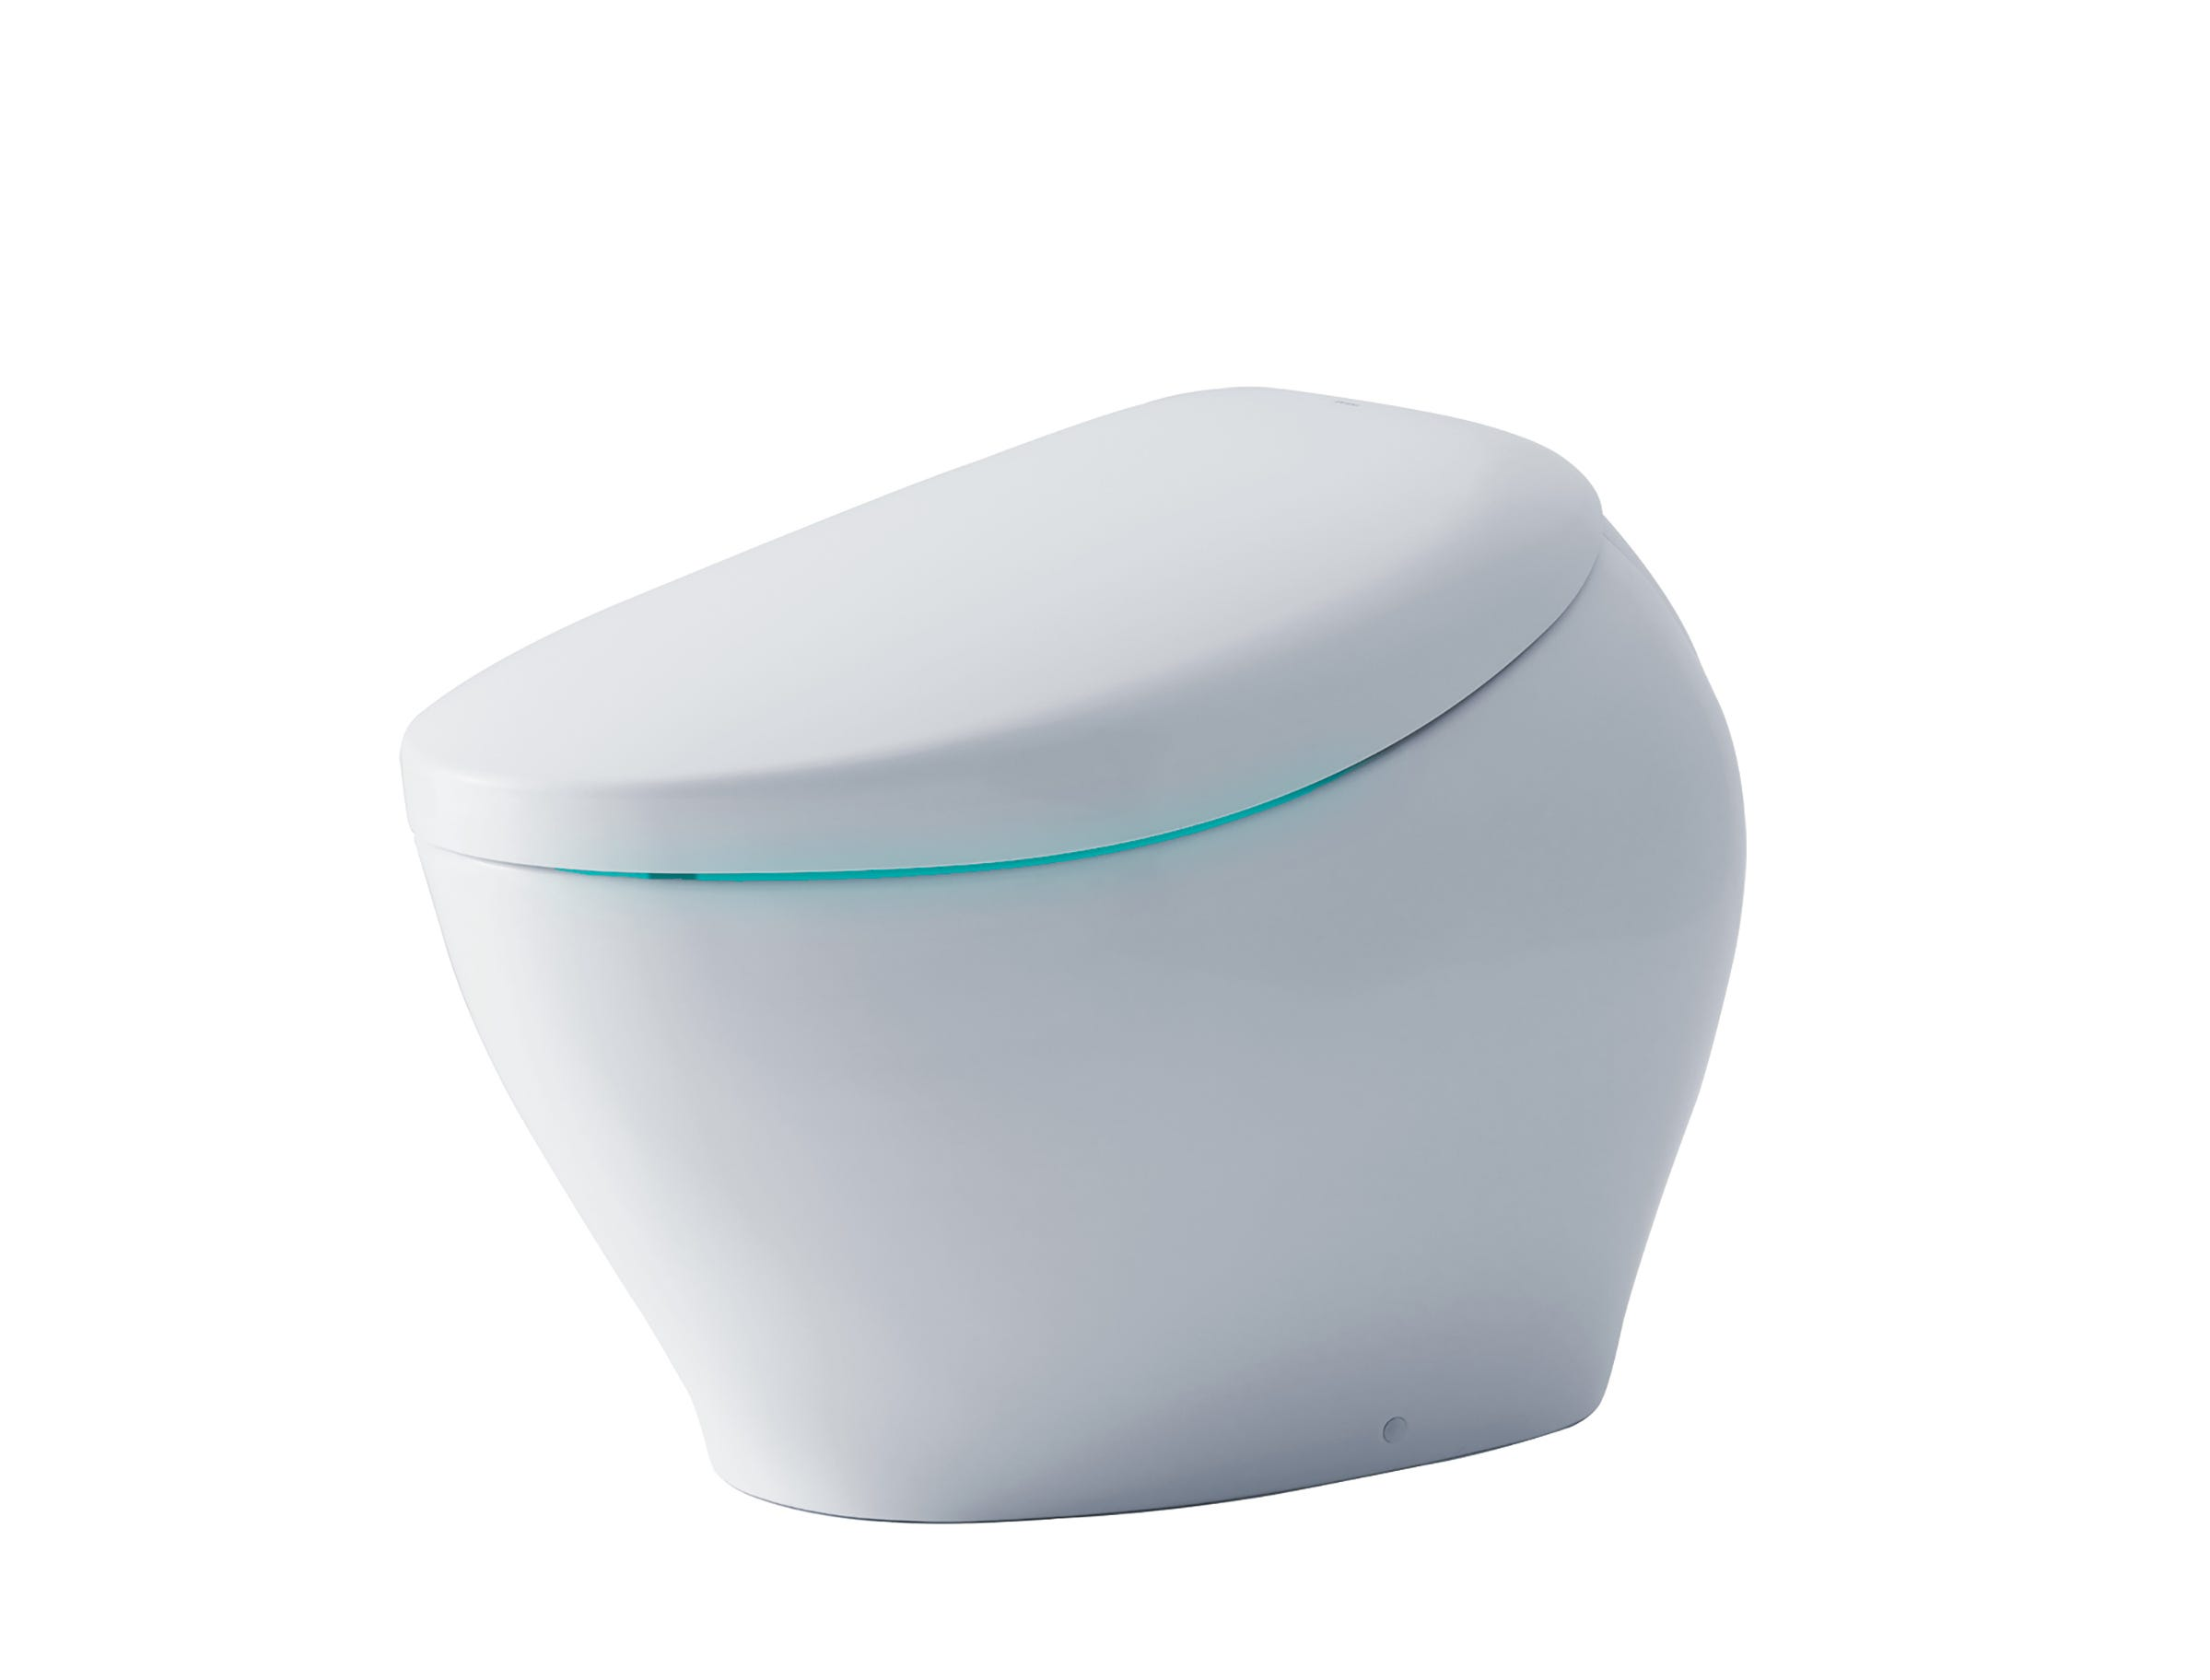 A CES 2019 Innovation Awards Honoree, TOTO's Neorest NX2 is its intelligent toilet with its most advanced cleansing technology.